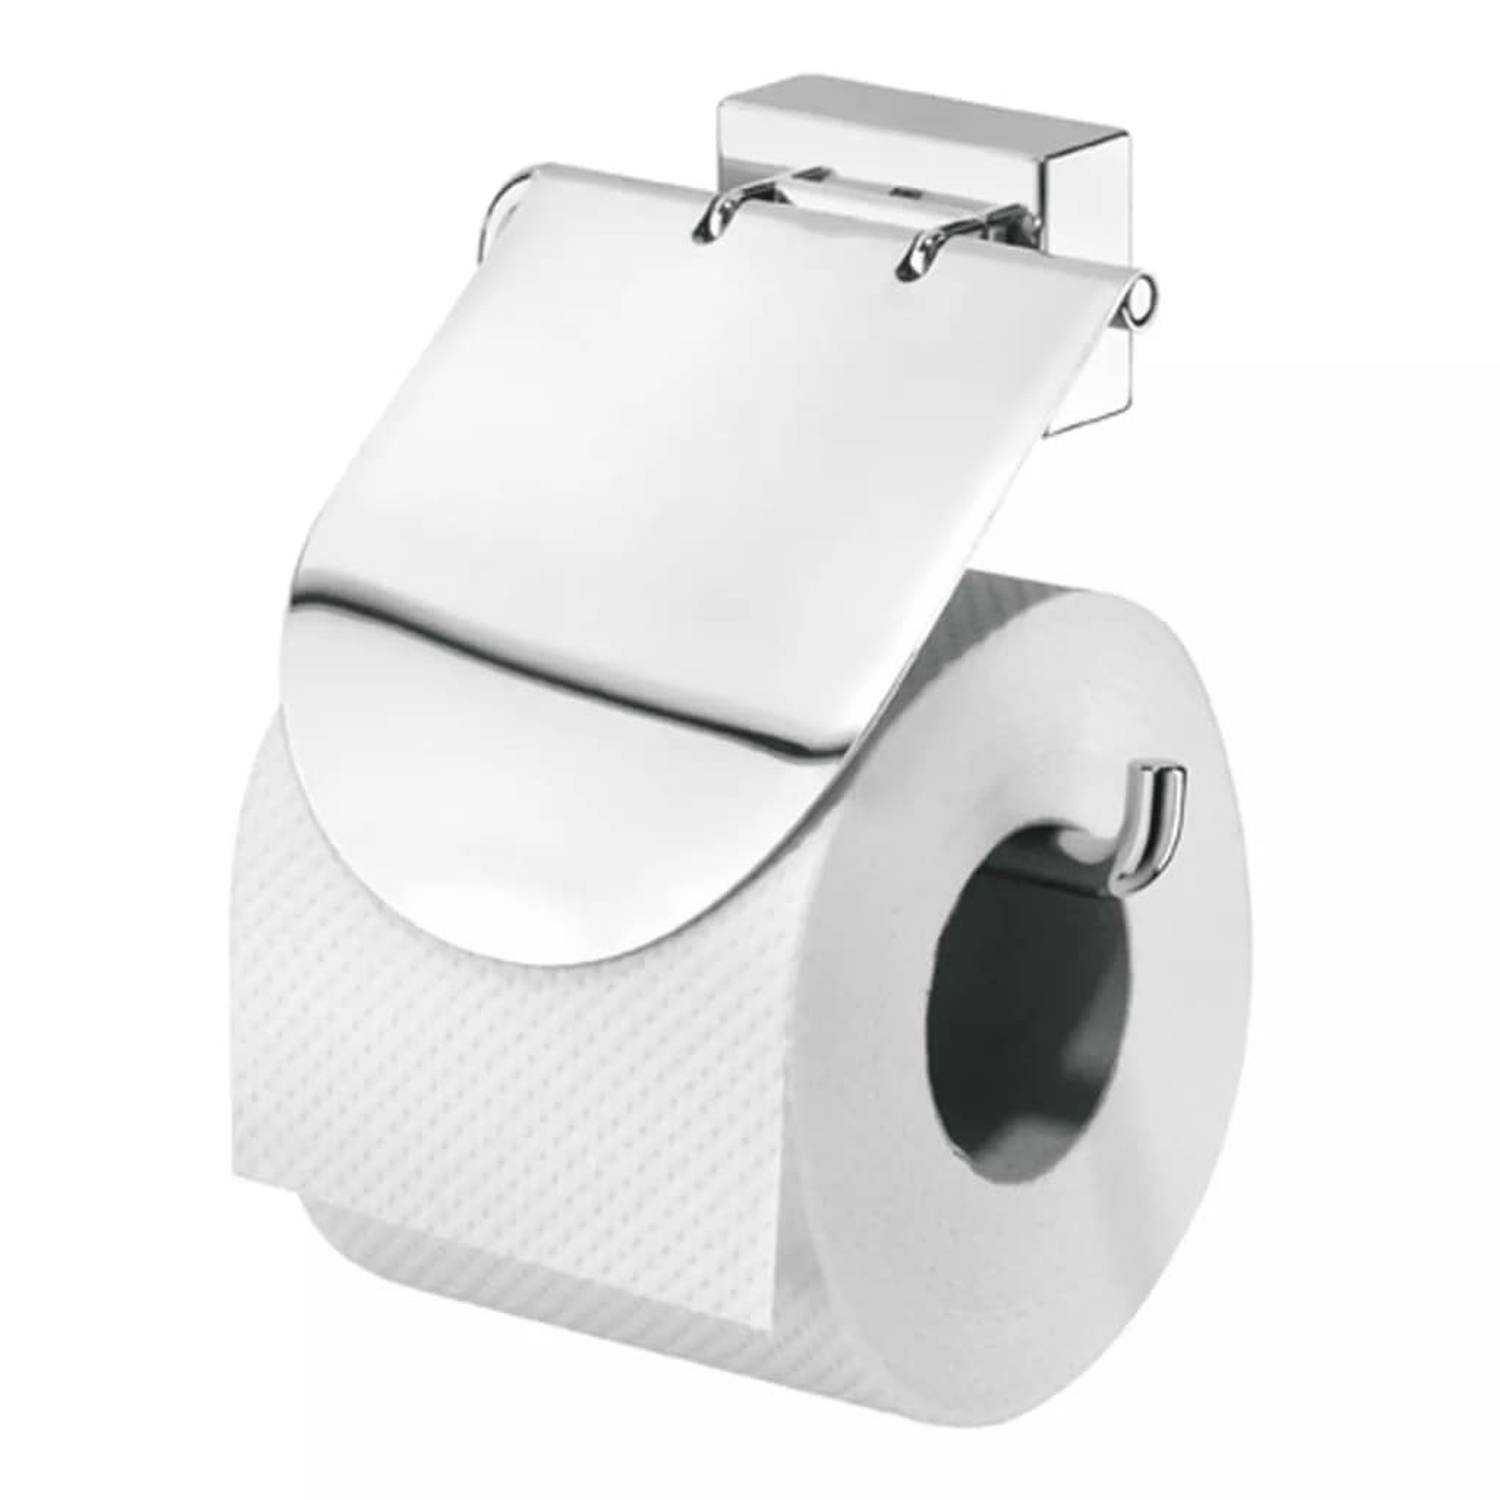 Tiger toiletrolhouder figueras chroom 319110341